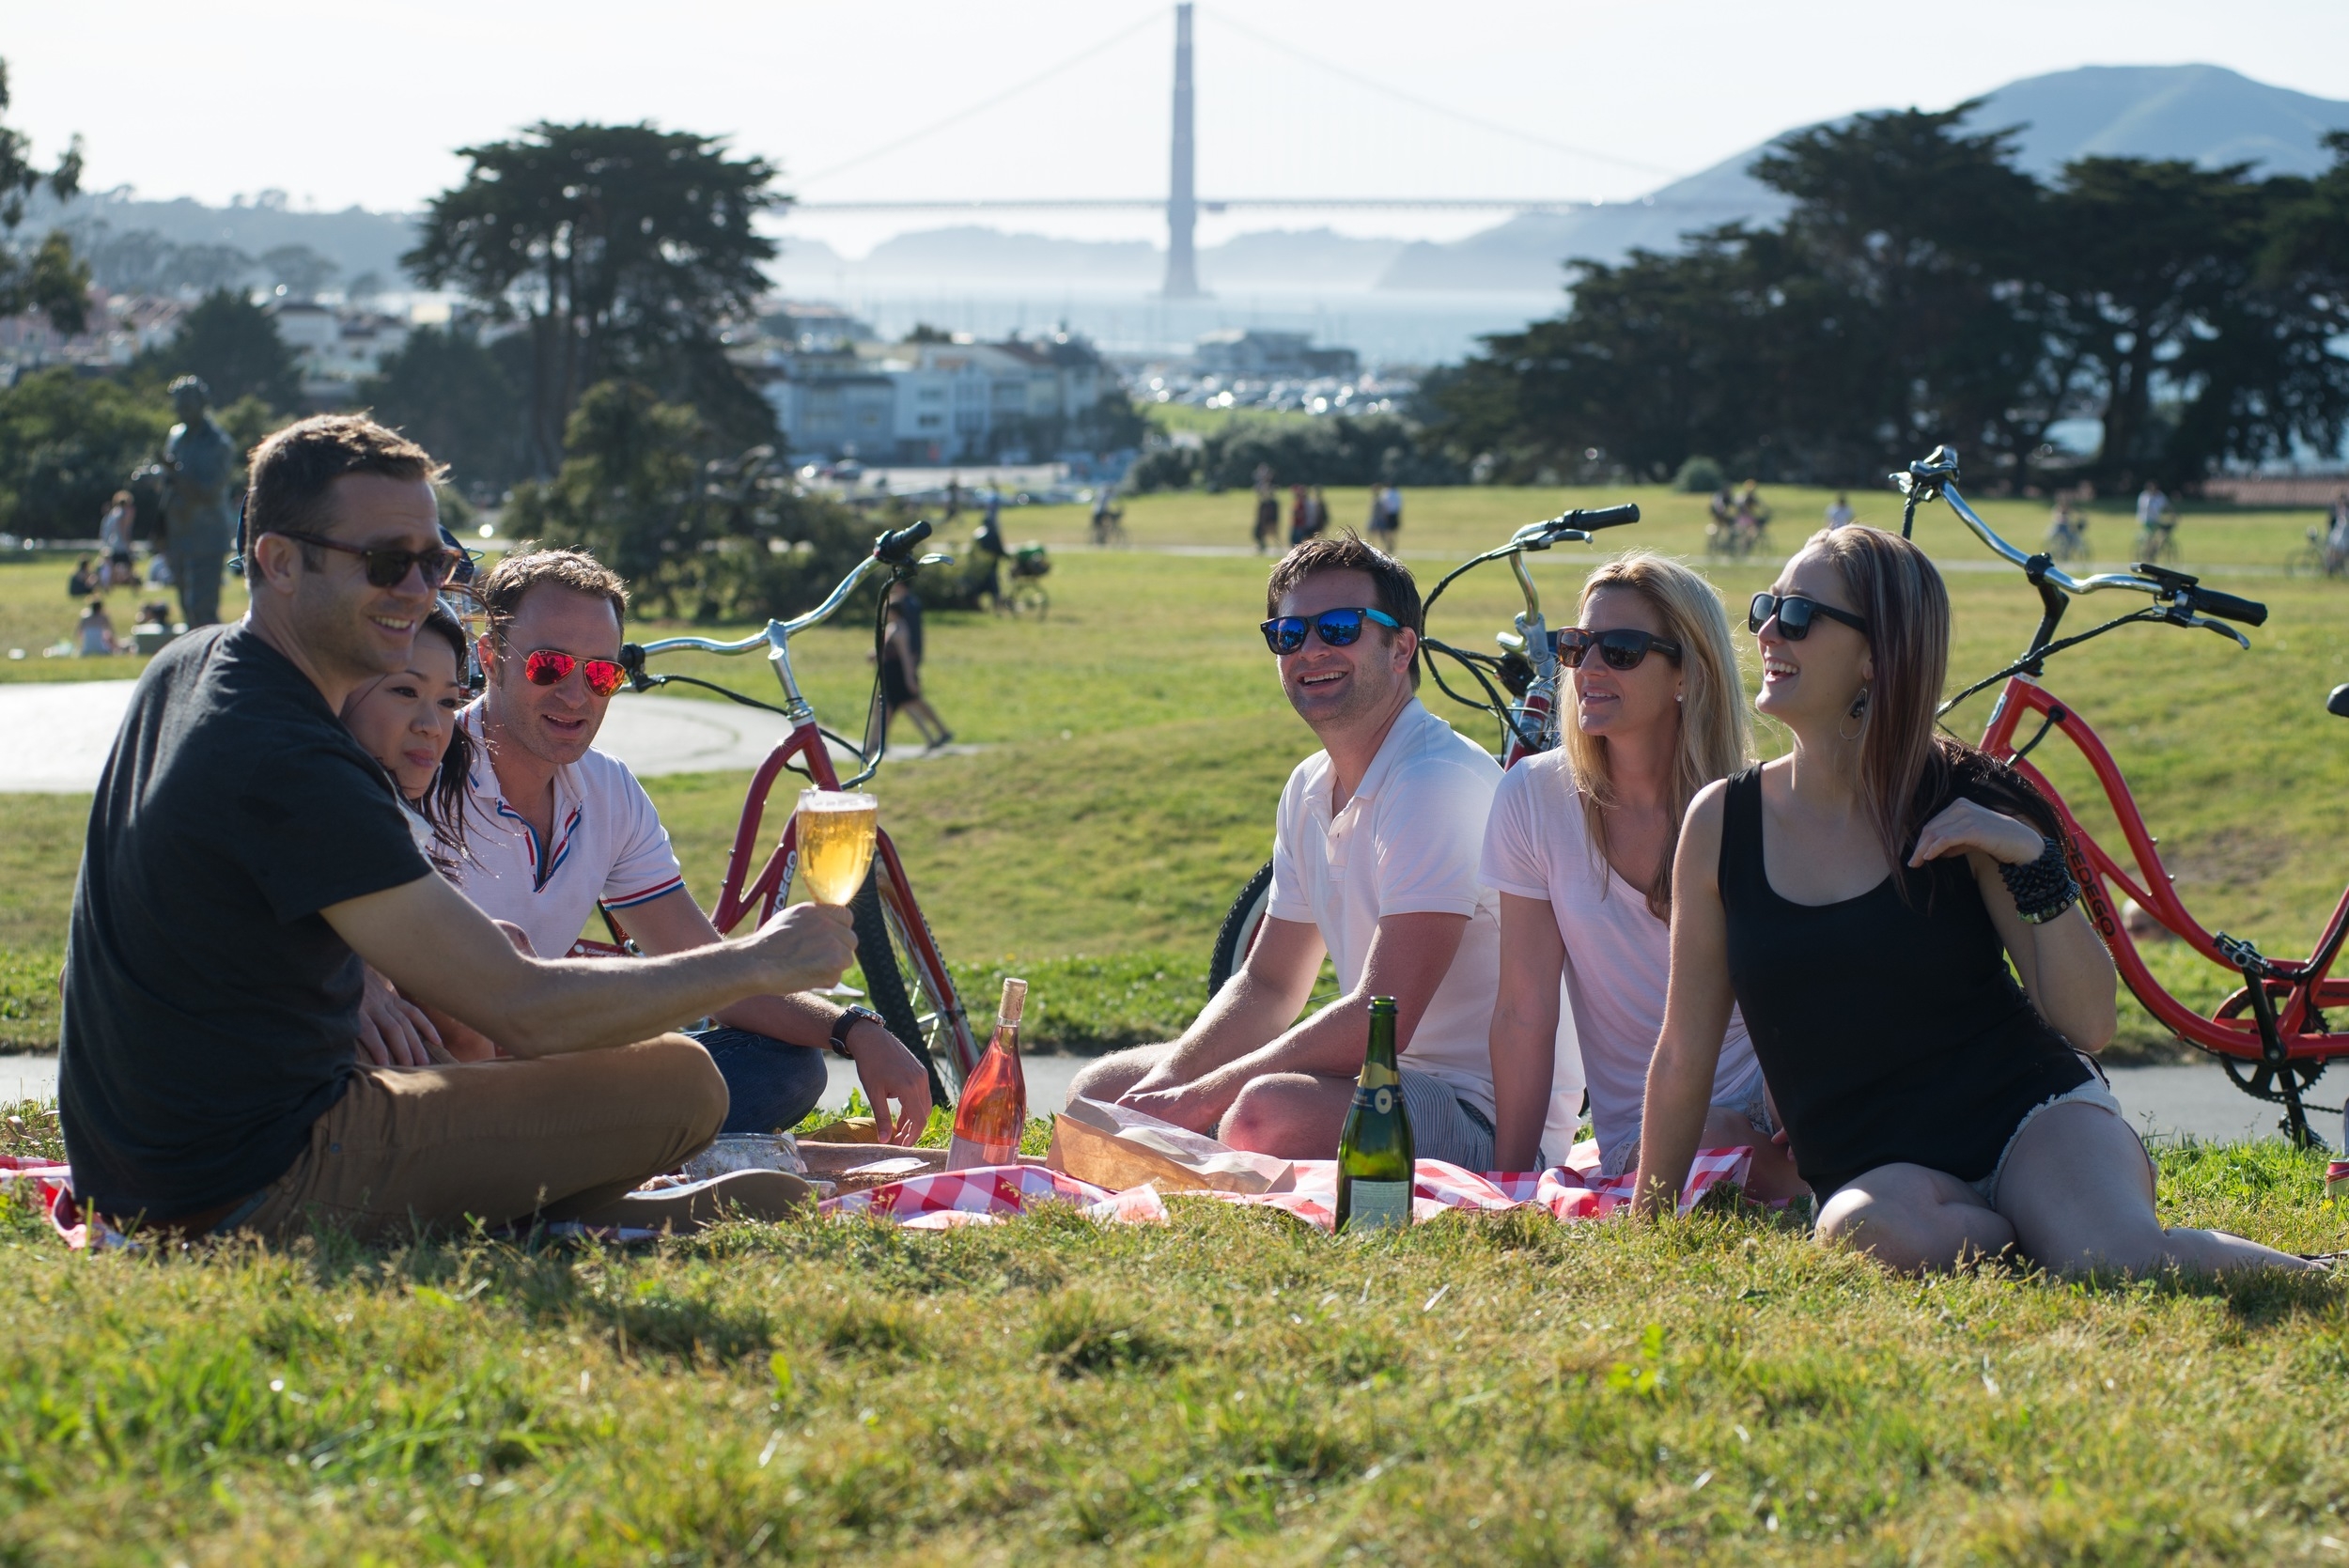 SF - Dylans Tours Petite Picnic - 2016 - 12 of 31.jpg